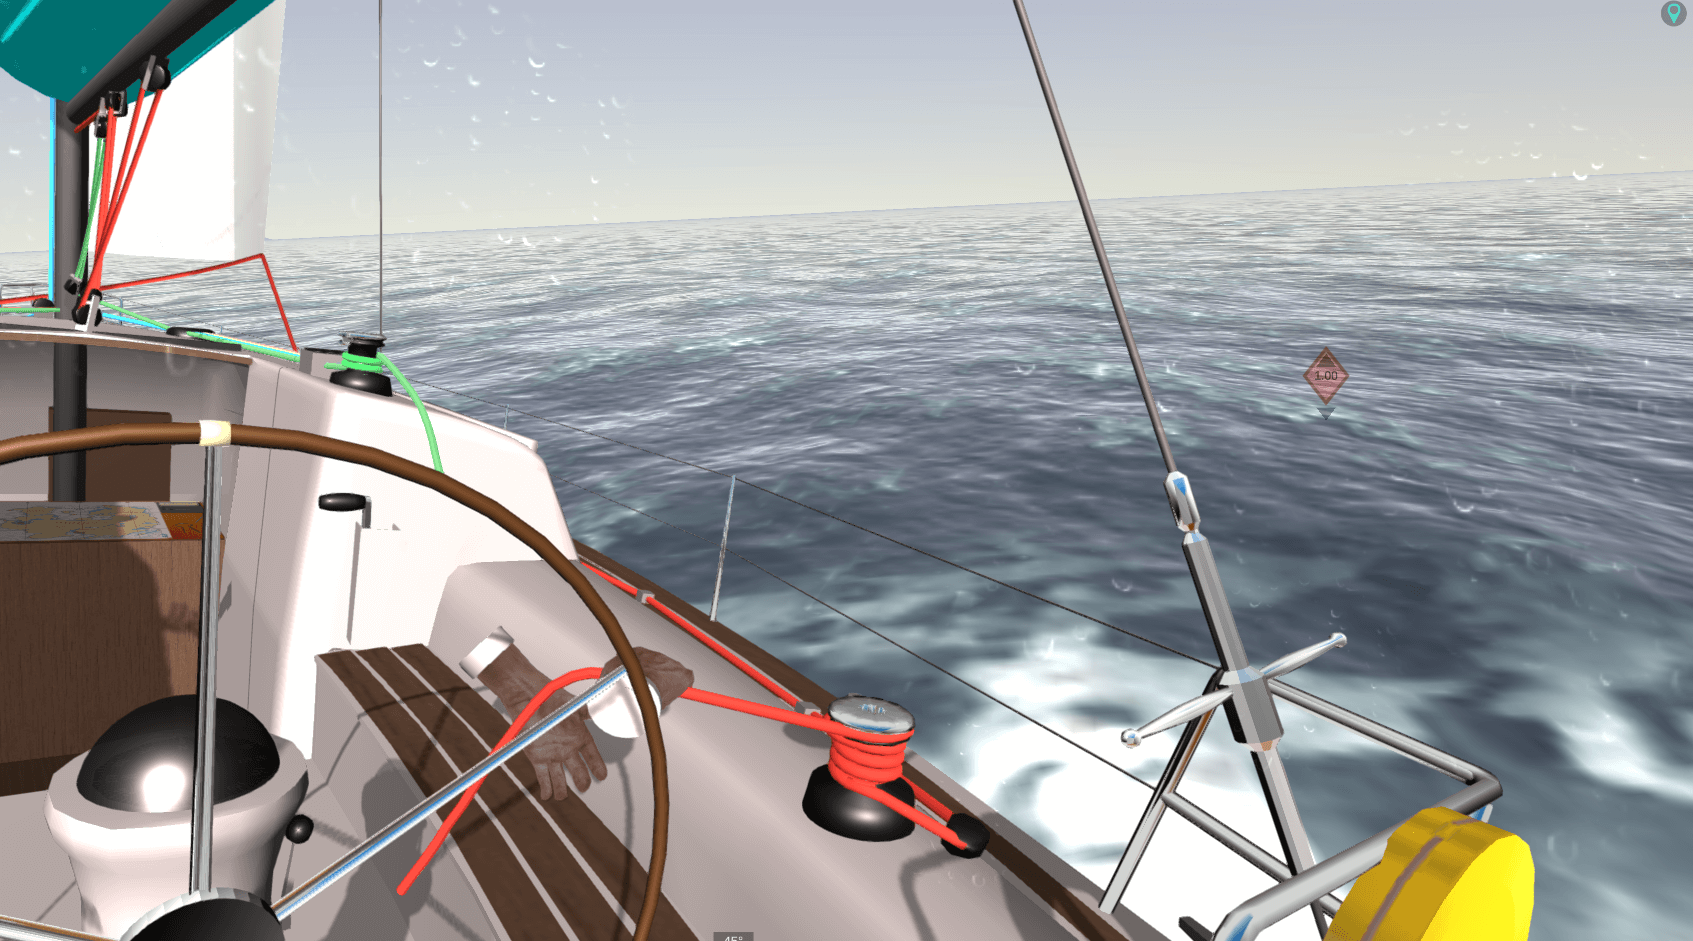 eSail Sailing Simulator Backstay Tensioner